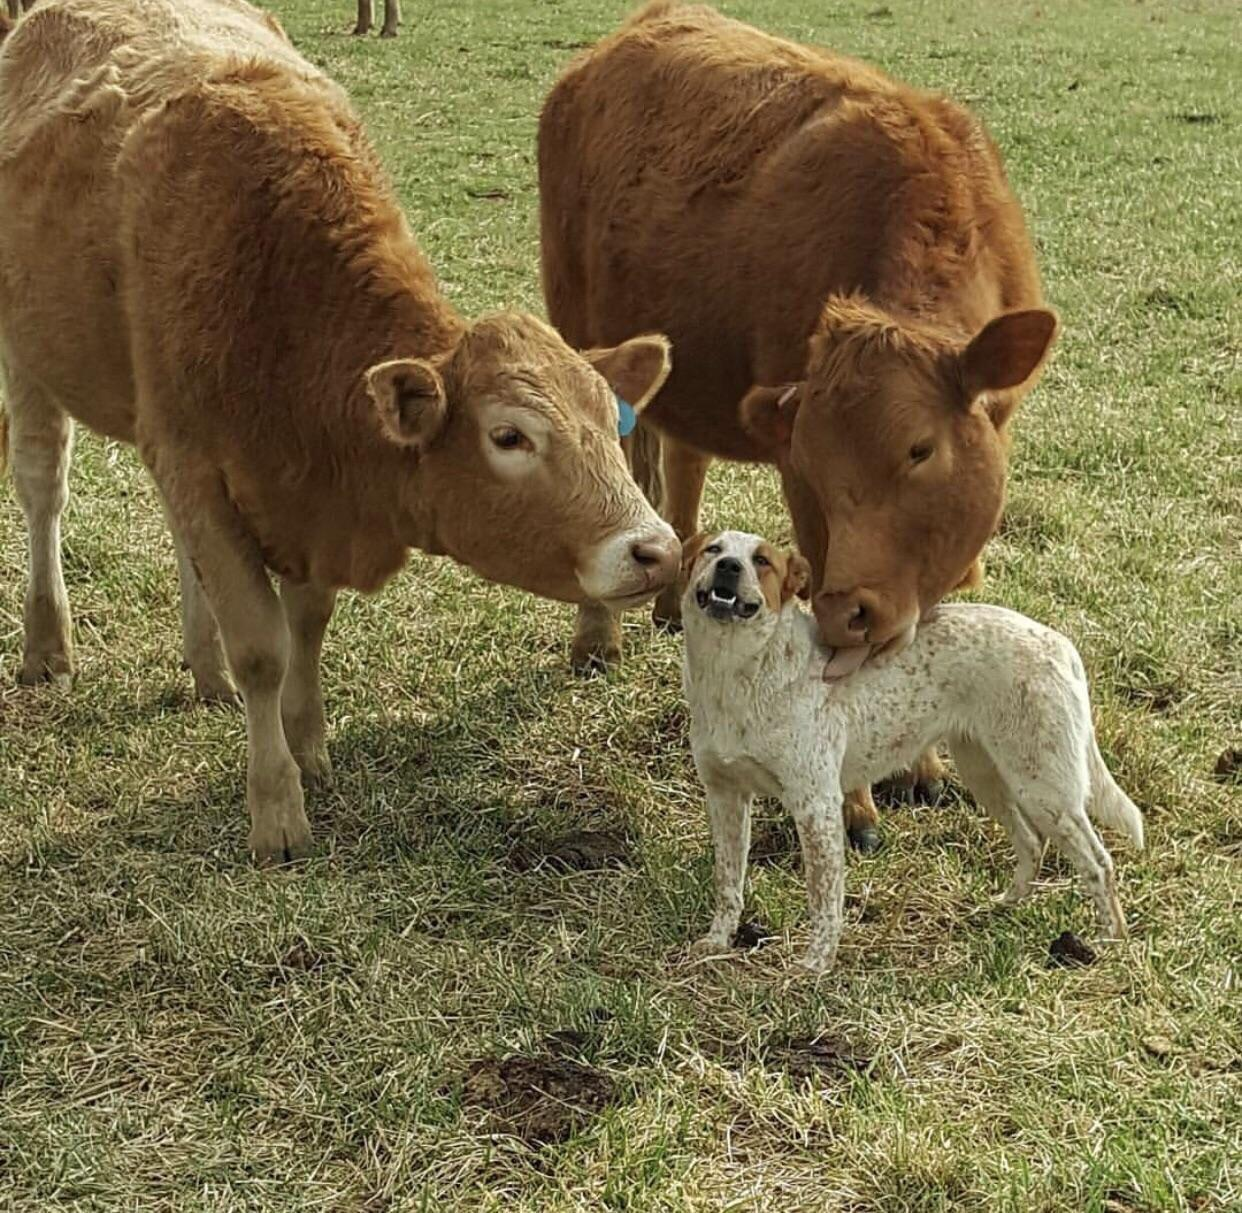 Cow lick pictures